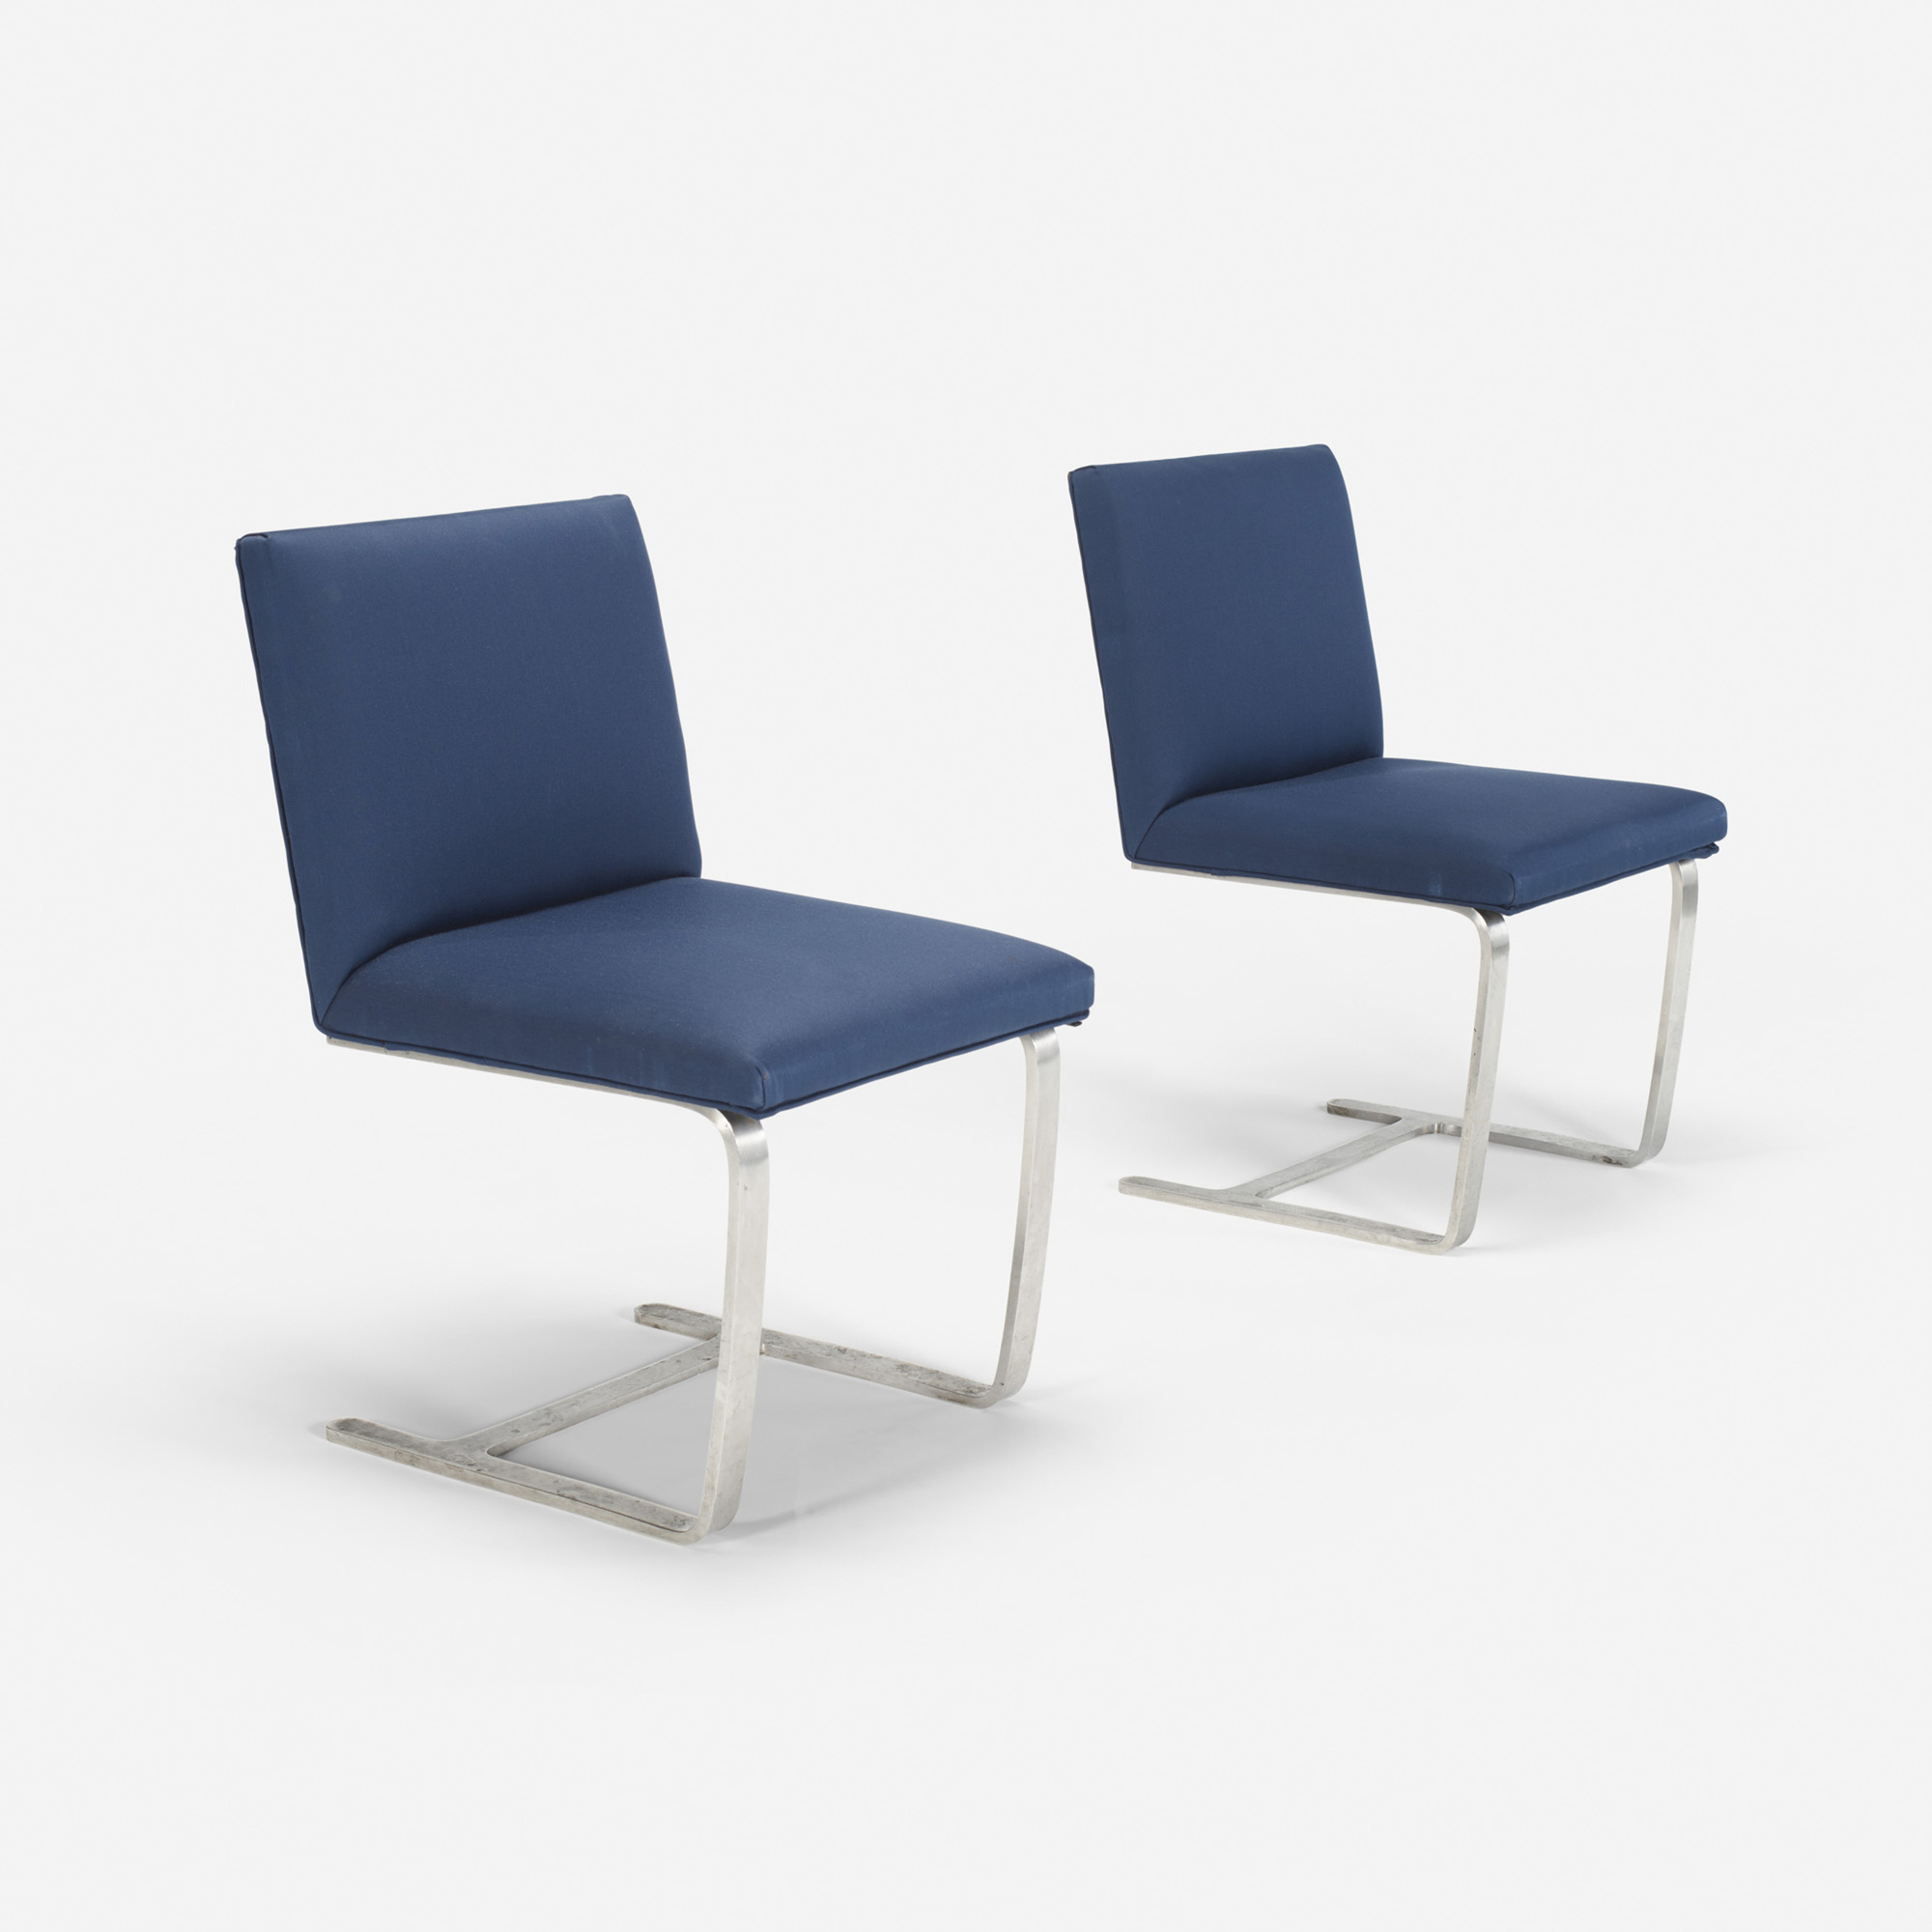 213: Ludwig Mies van der Rohe / Custom Brno side chairs from The Four Seasons, pair (1 of 1)